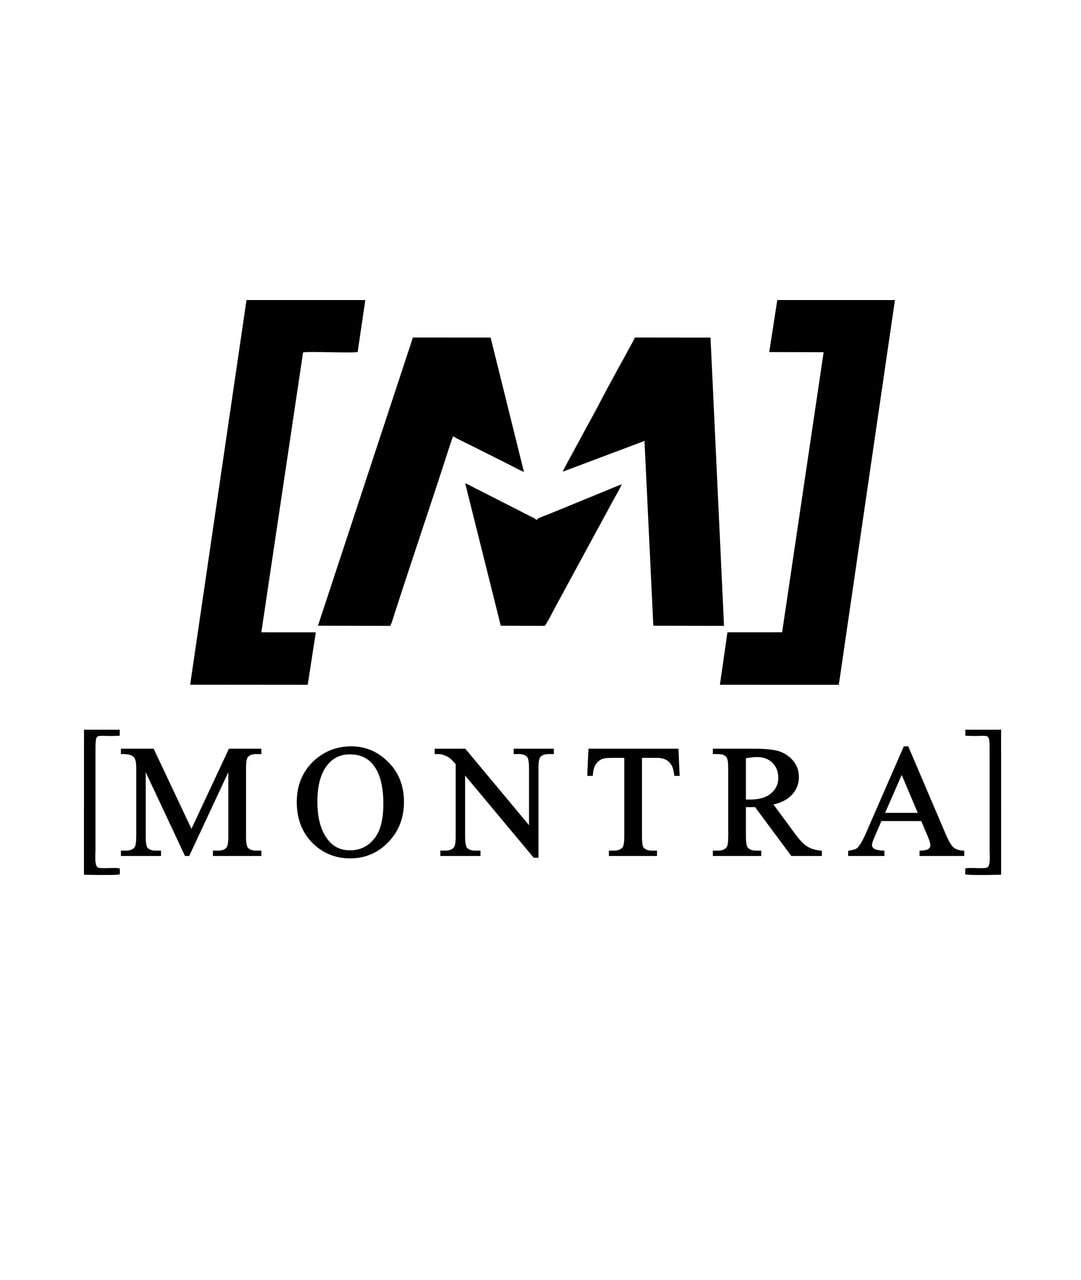 Montramx Coupons and Promo Code